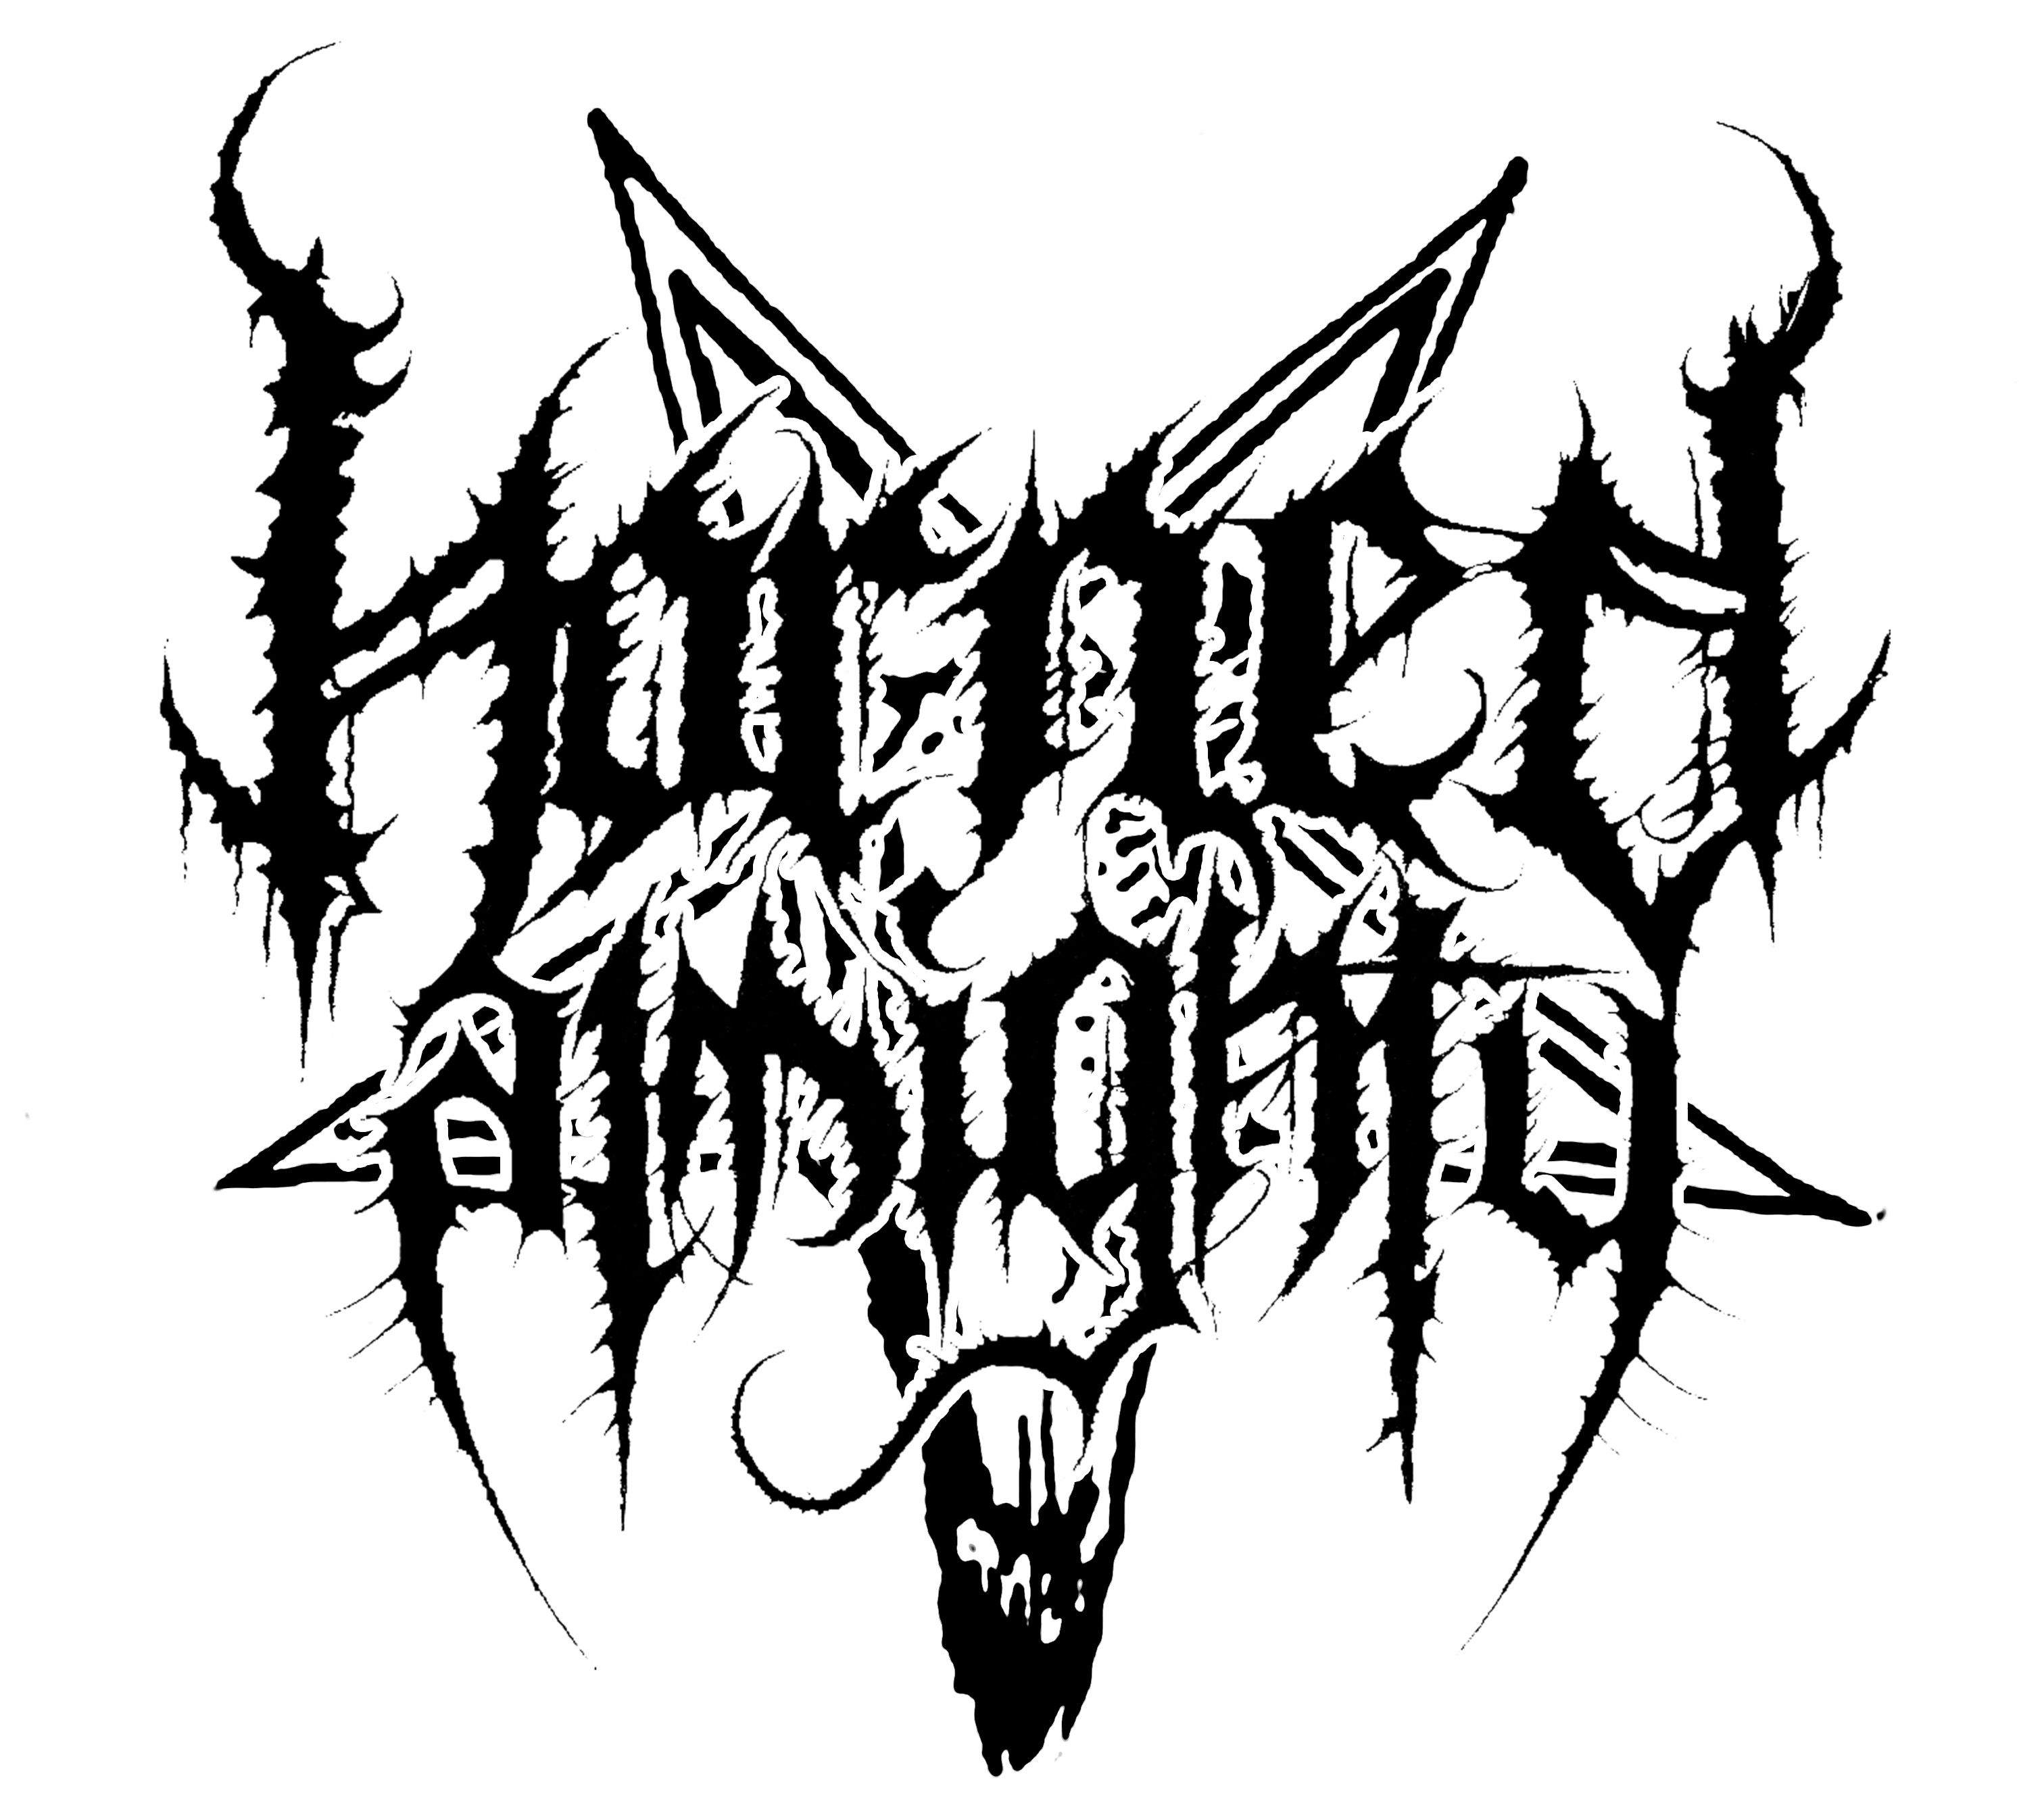 horned almighty logos irados pinterest black metal and heavy metal rh pinterest com au Thrash Metal Band Logos 70s Rock Bands Logos